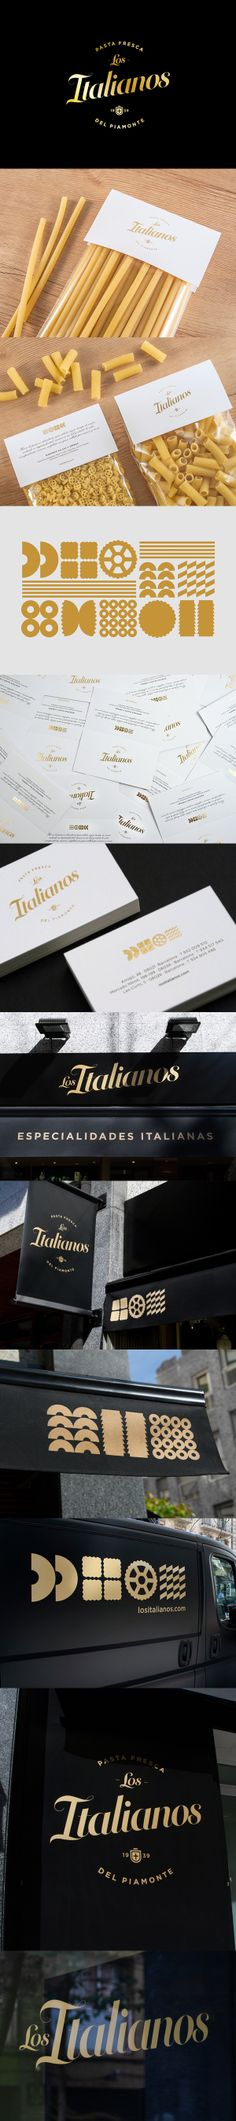 Los Italianos it's pasta for dinner #identity #packaging #branding PD